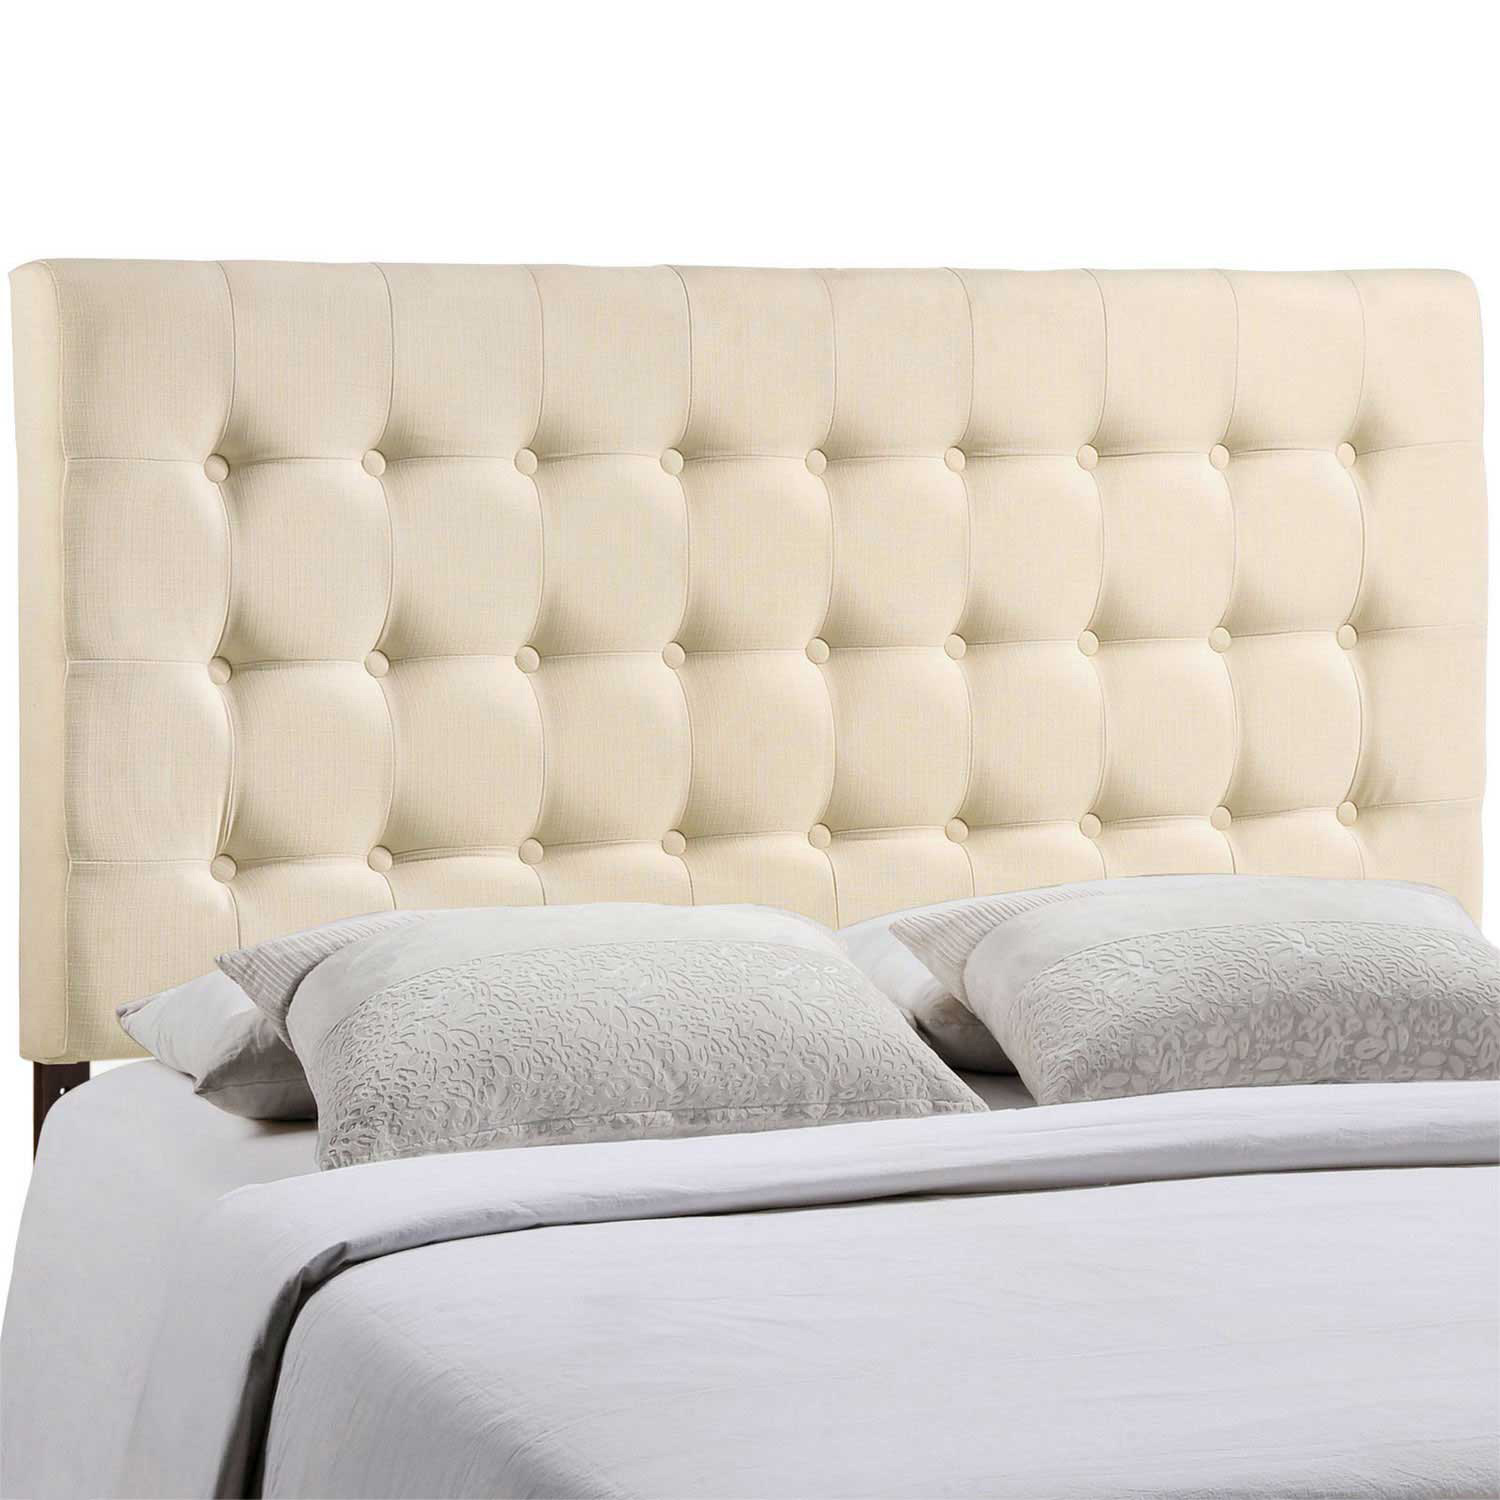 Modway Tinble Queen Headboard - Ivory